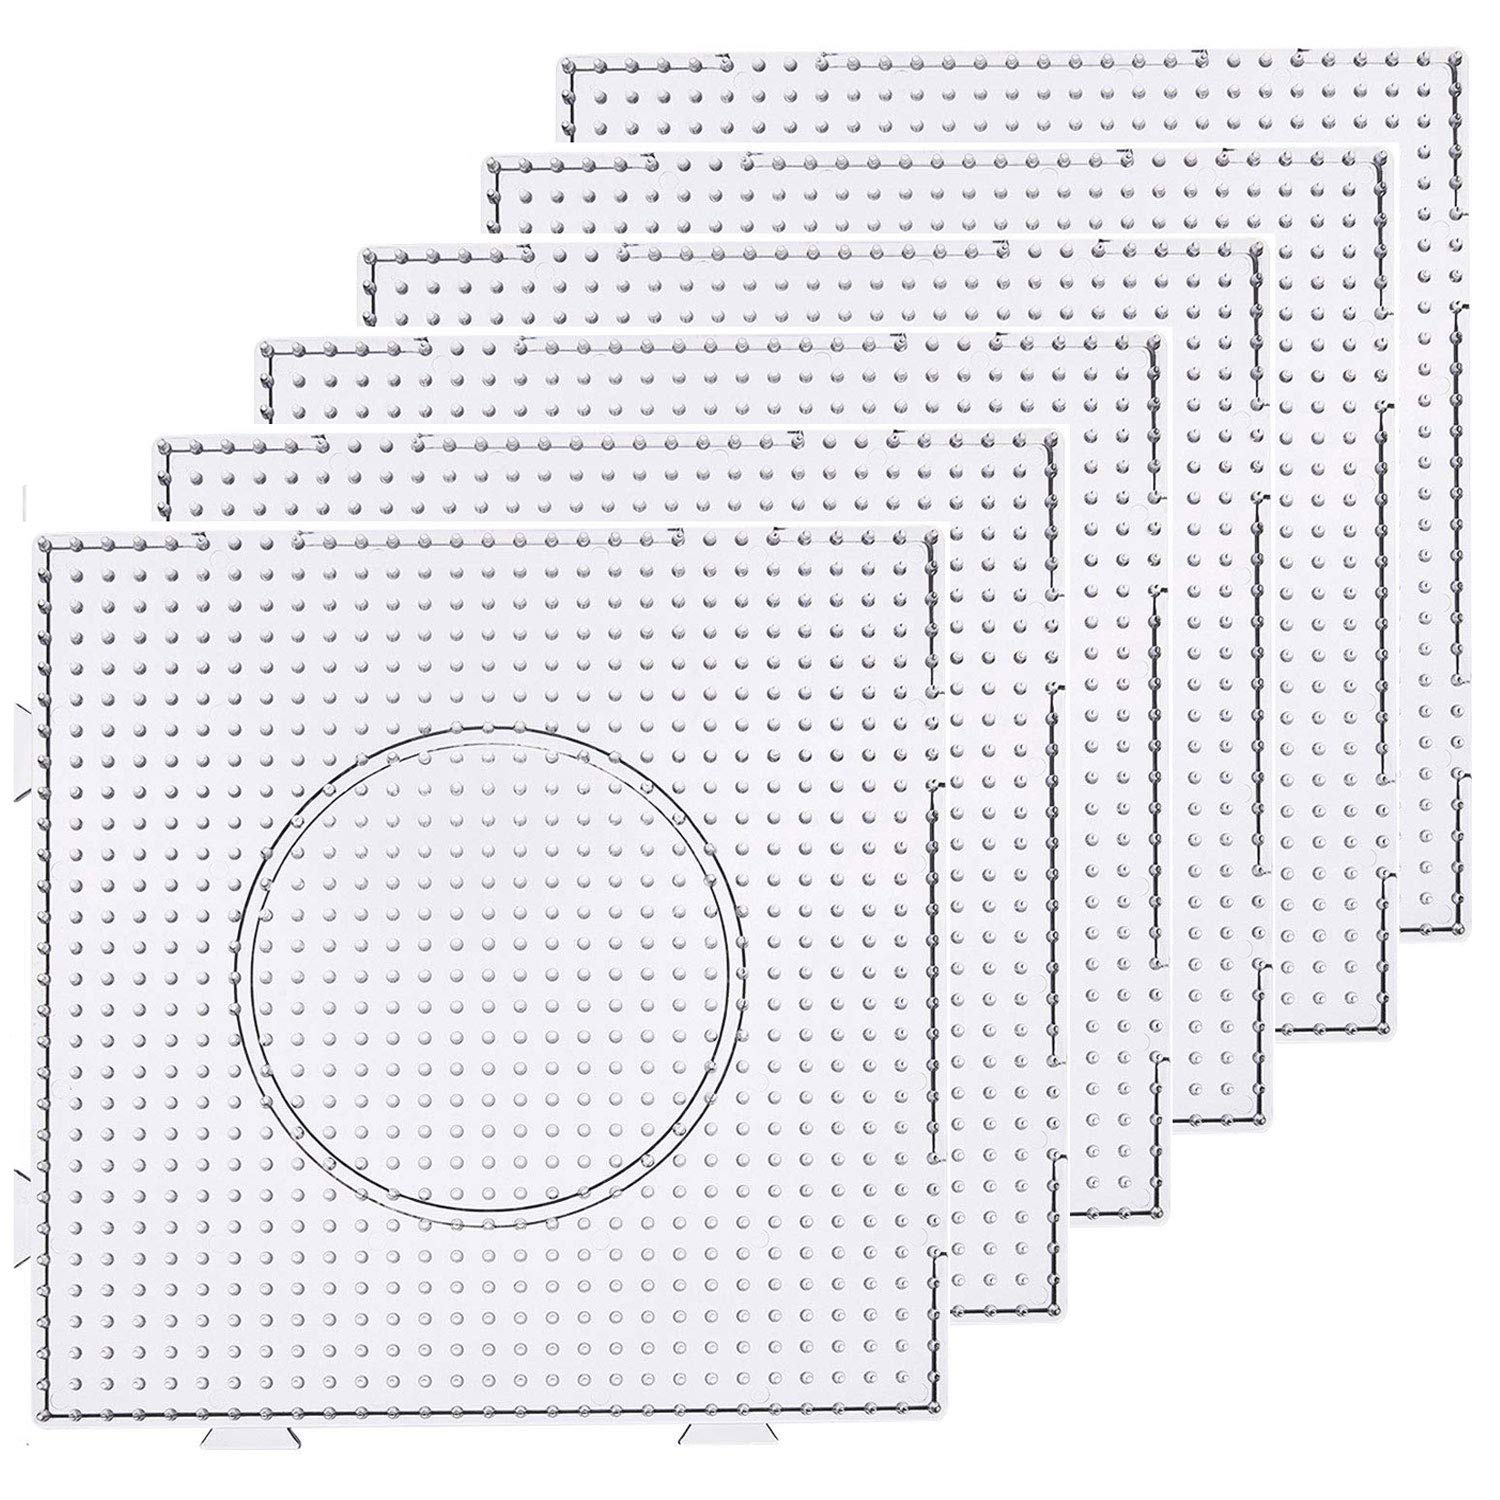 Luckkyme 5mm Fuse Beads Boards Large Square Clear Plastic Pegboards for Kids (6 PCS)